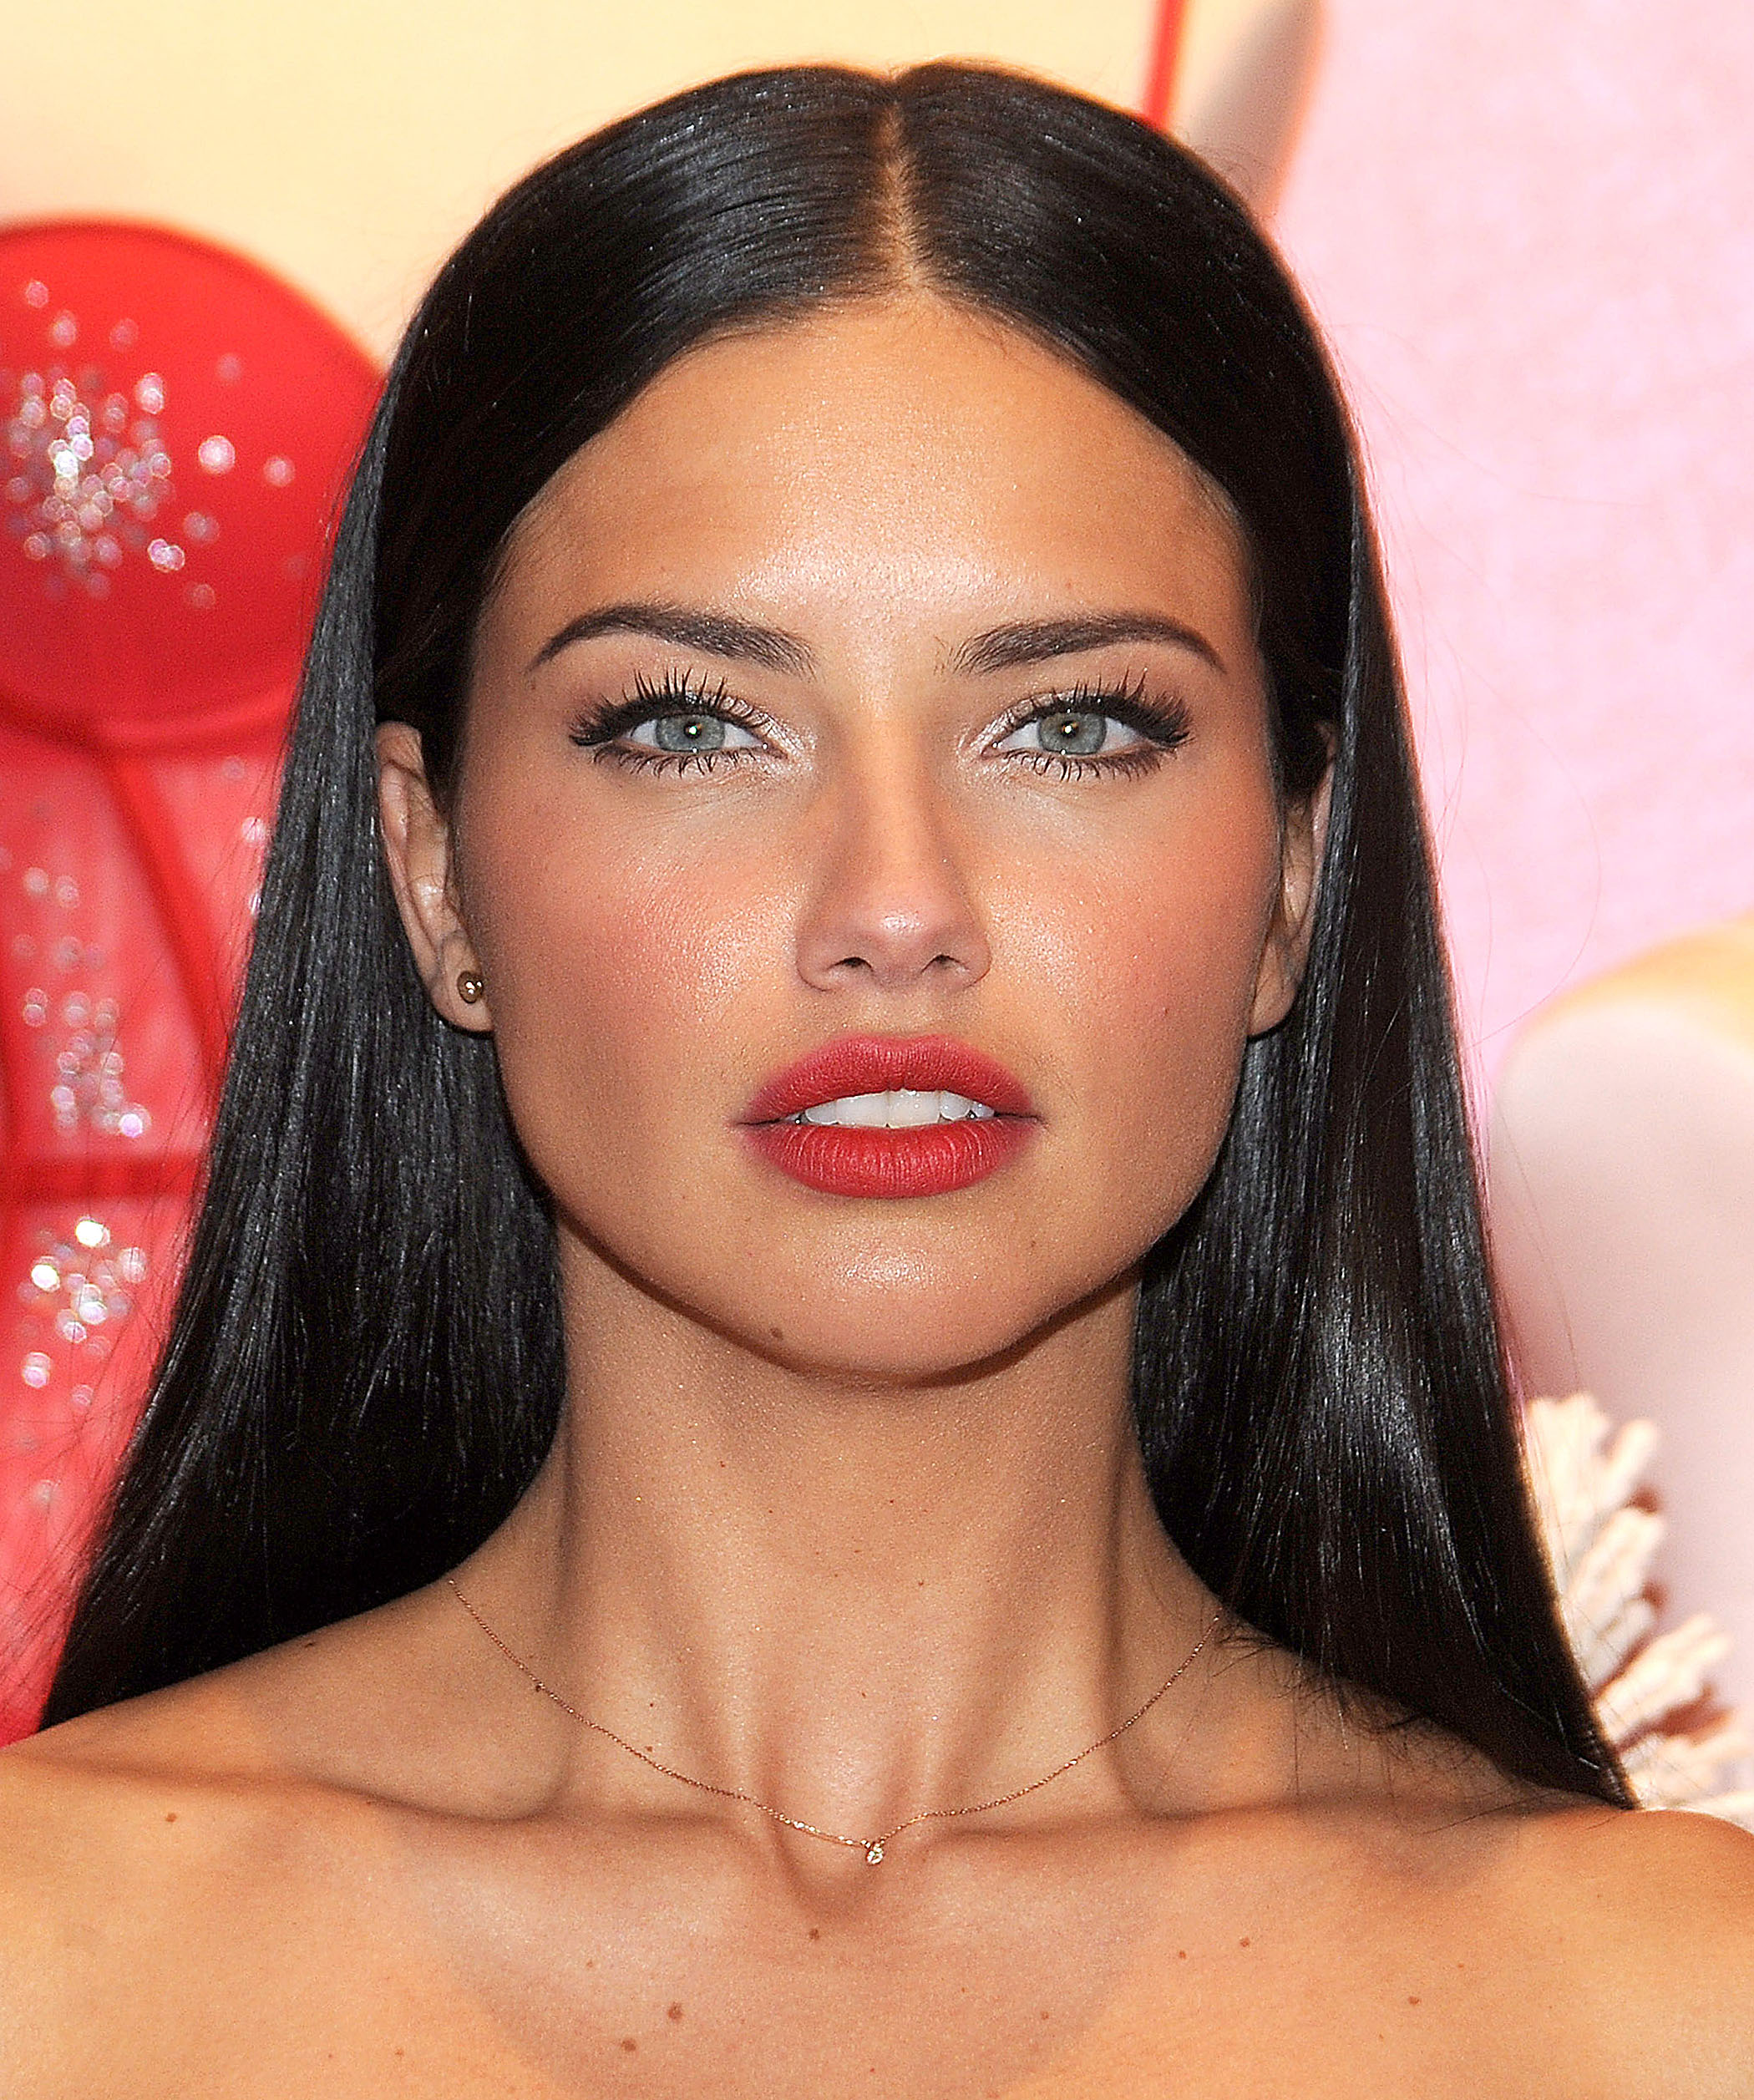 Adriana Lima: Adriana Lima's Face Is Beyond Perfect Mayne Dammmnnn